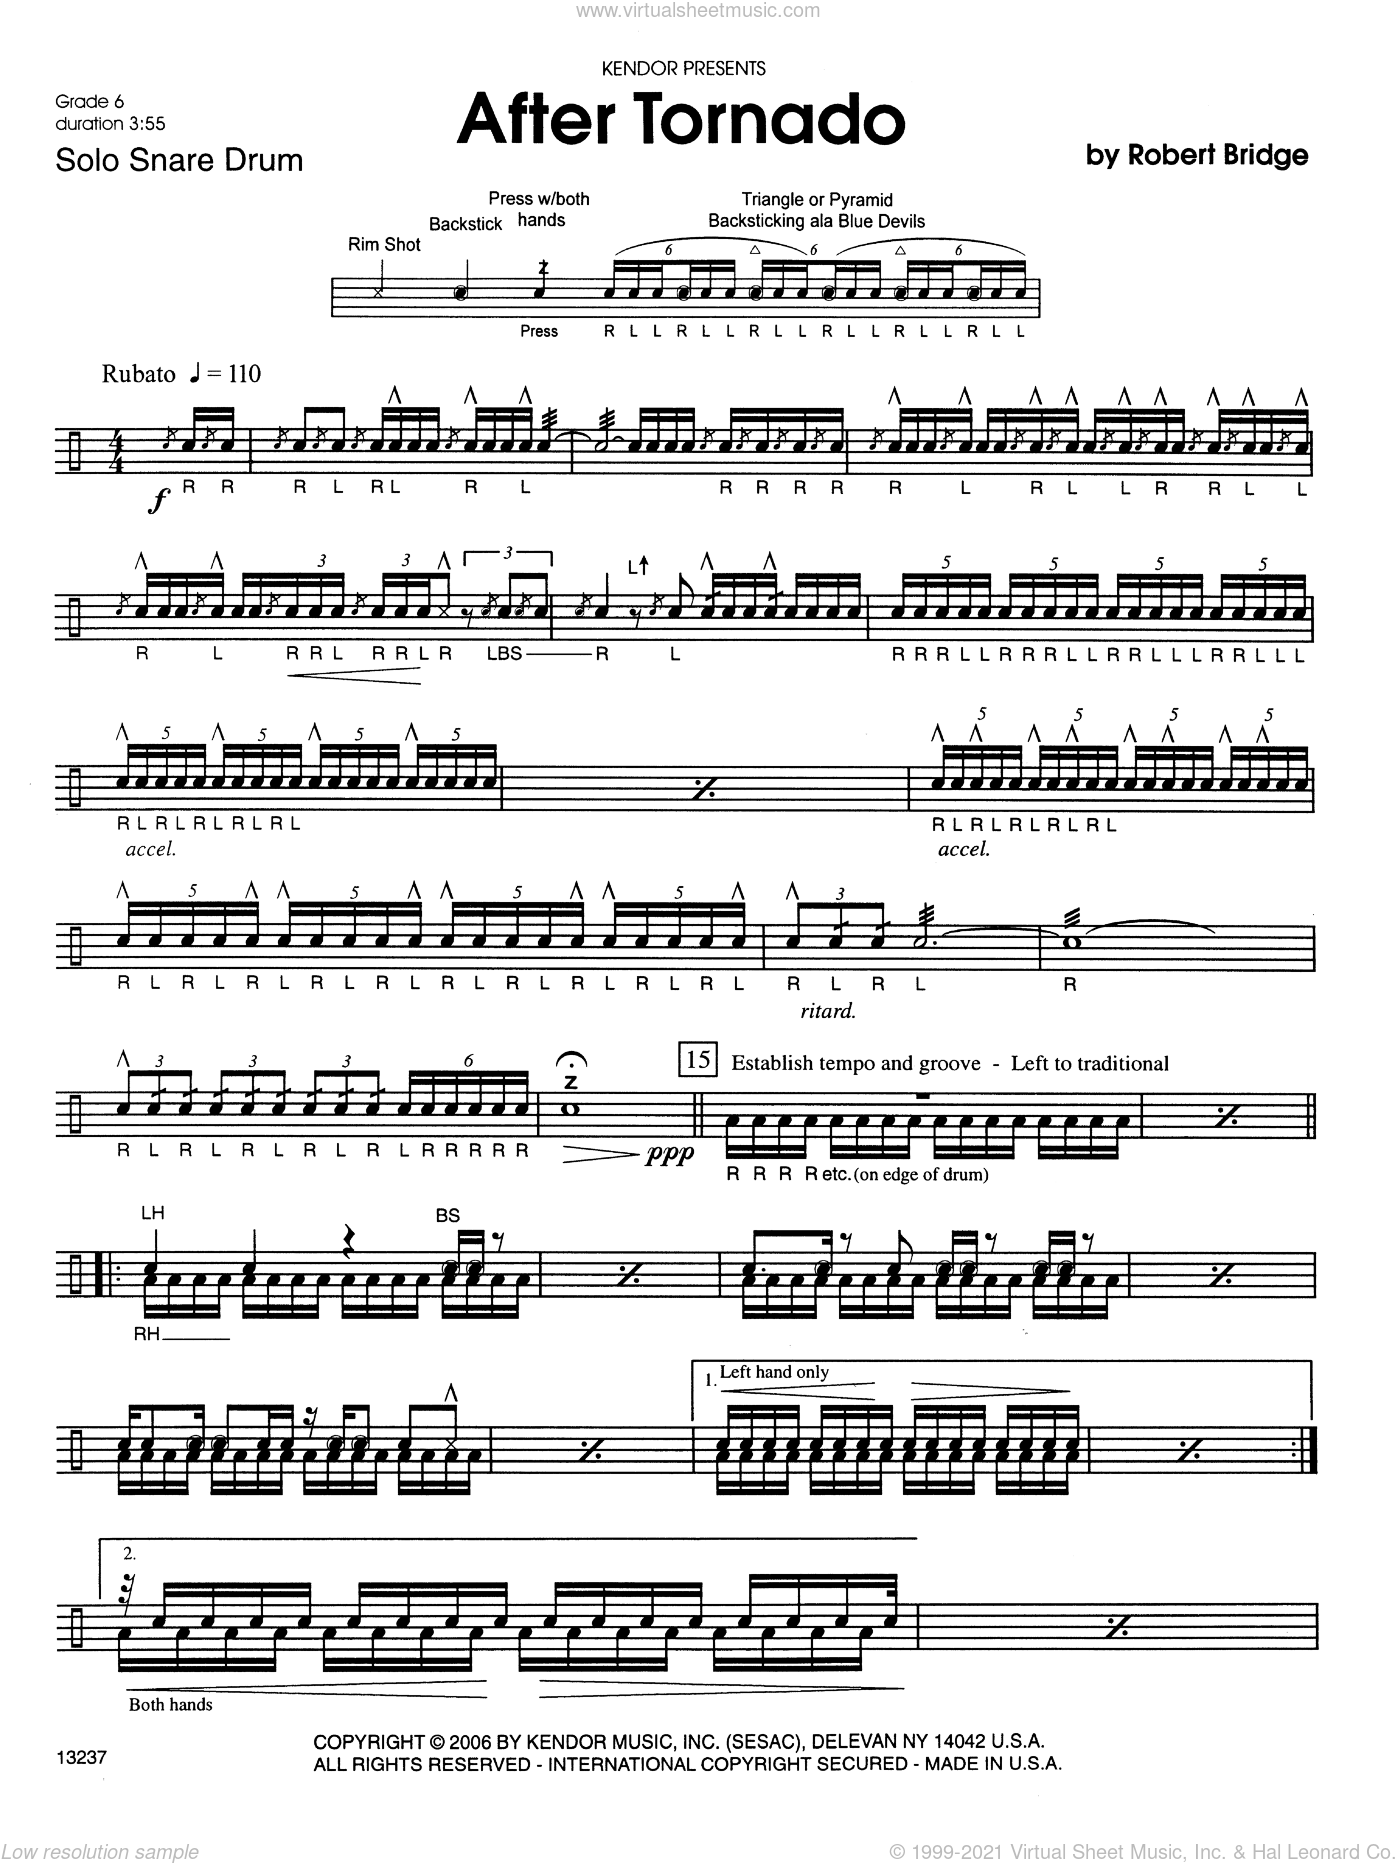 After Tornado sheet music for percussions by Robert Bridge